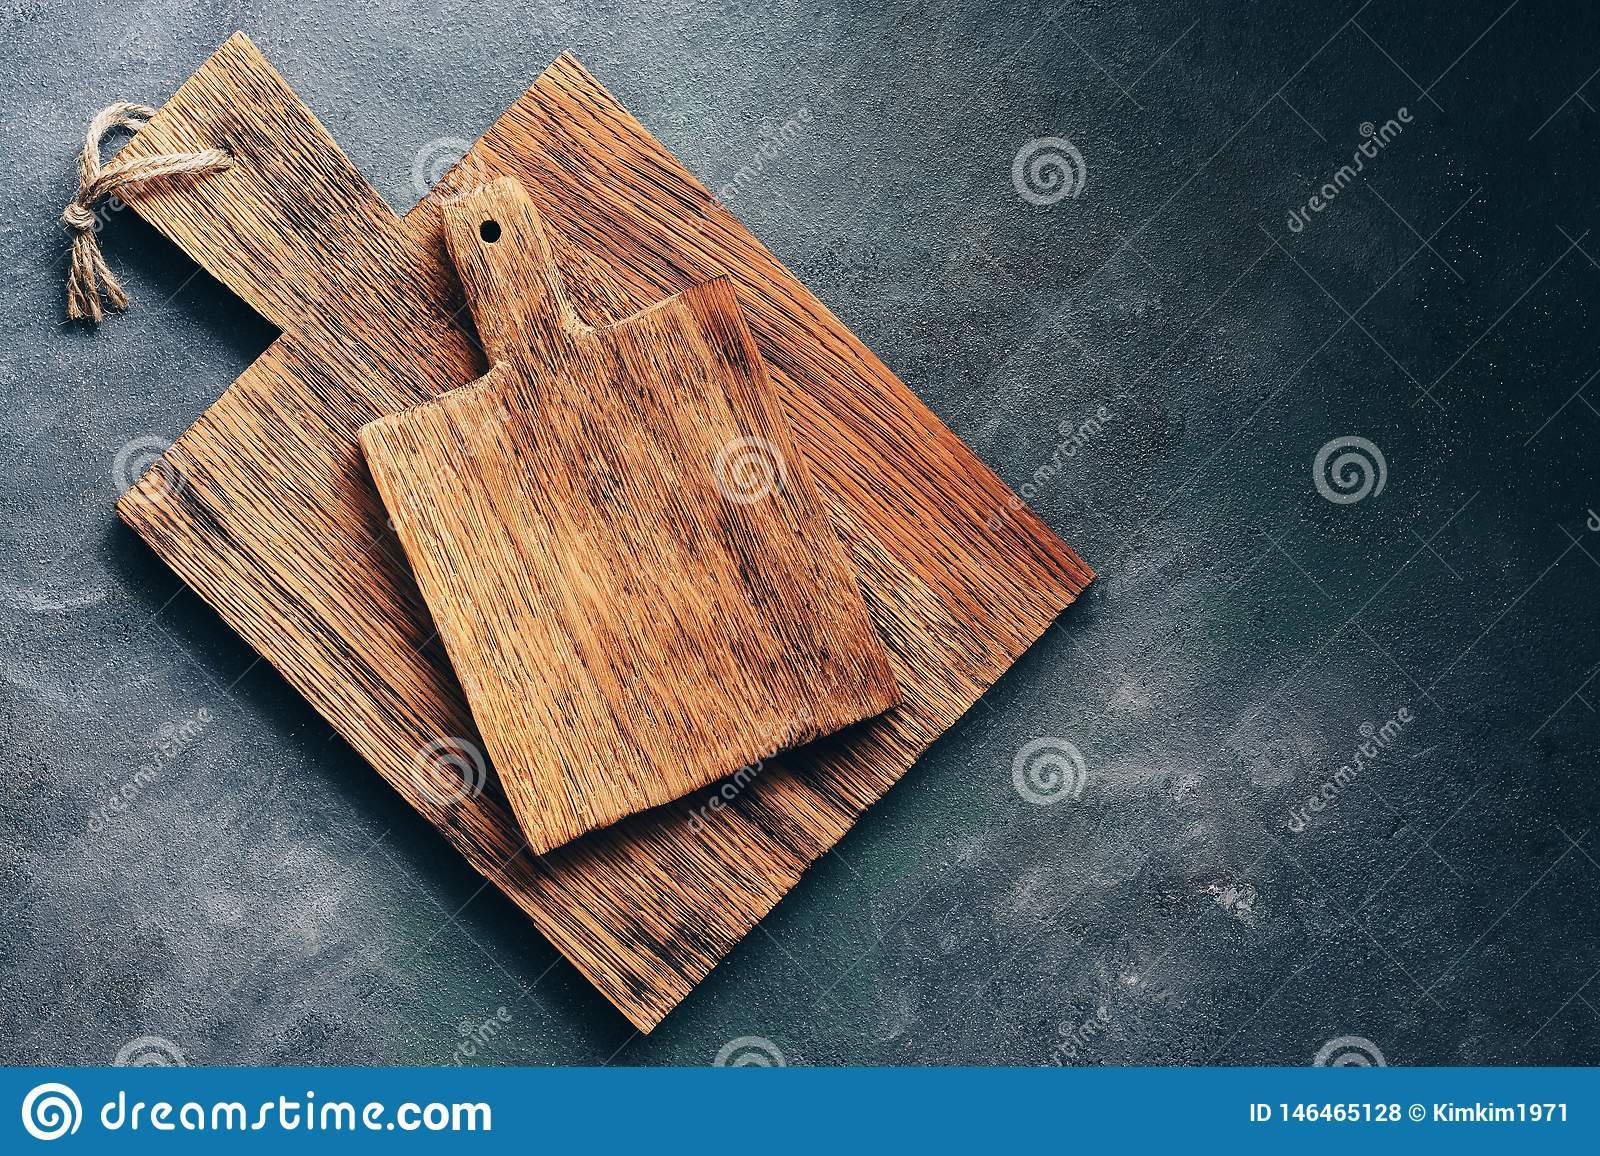 Two Rustic Wooden Cutting Board On A Gray Background Top View Flat Lay Copy Space Stock Photo Image Of Desk Blank 146465128